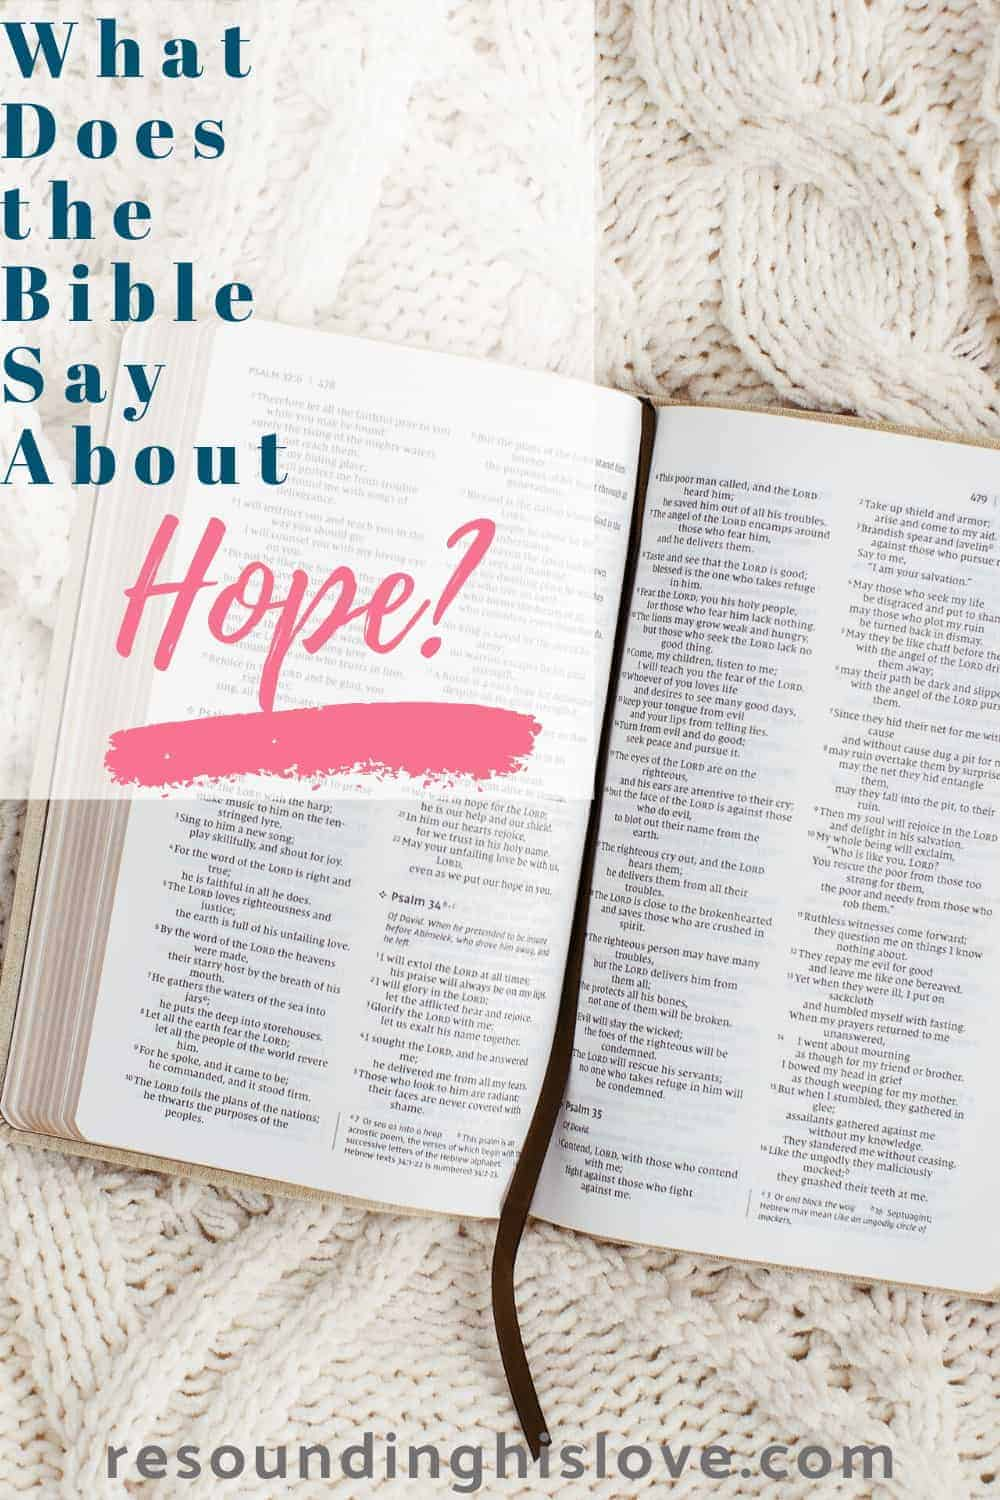 an image of an open bible with text reading What Does the Bible Say about Hope?